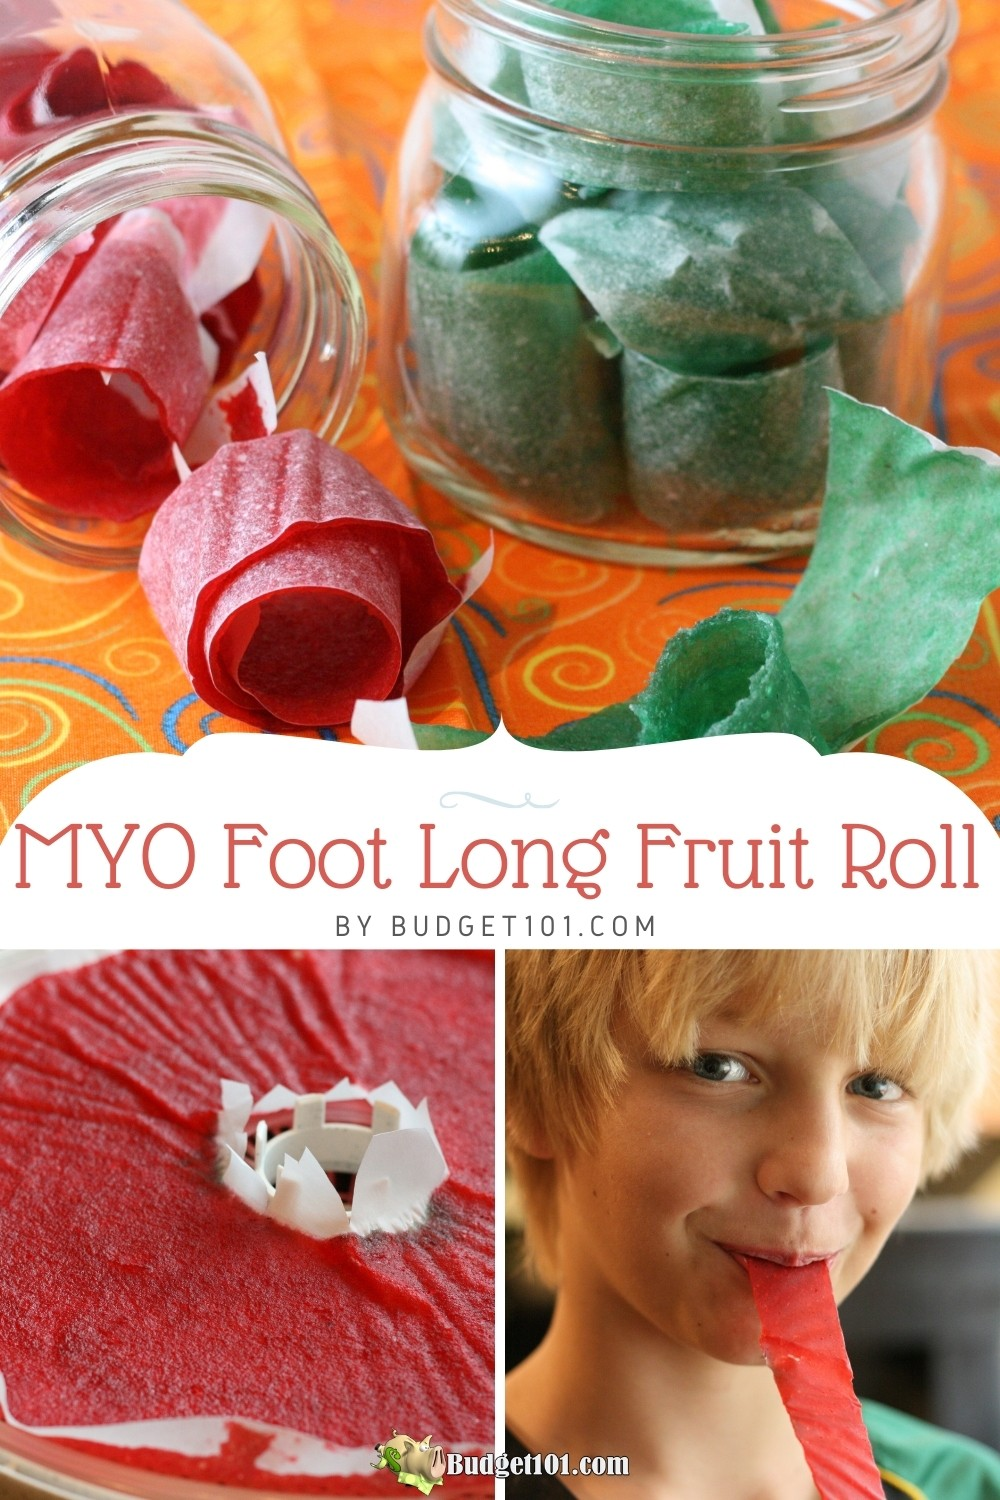 Make Your Own foot long fruit roll ups budget101.com! Just 2 easy ingredients, make them in a food dehydrator or in the oven. #FruitRolls #MYO #MakeYourOwn #FromScratch #DirtCheap #Munchies #Budget101 #FoodDehydrator